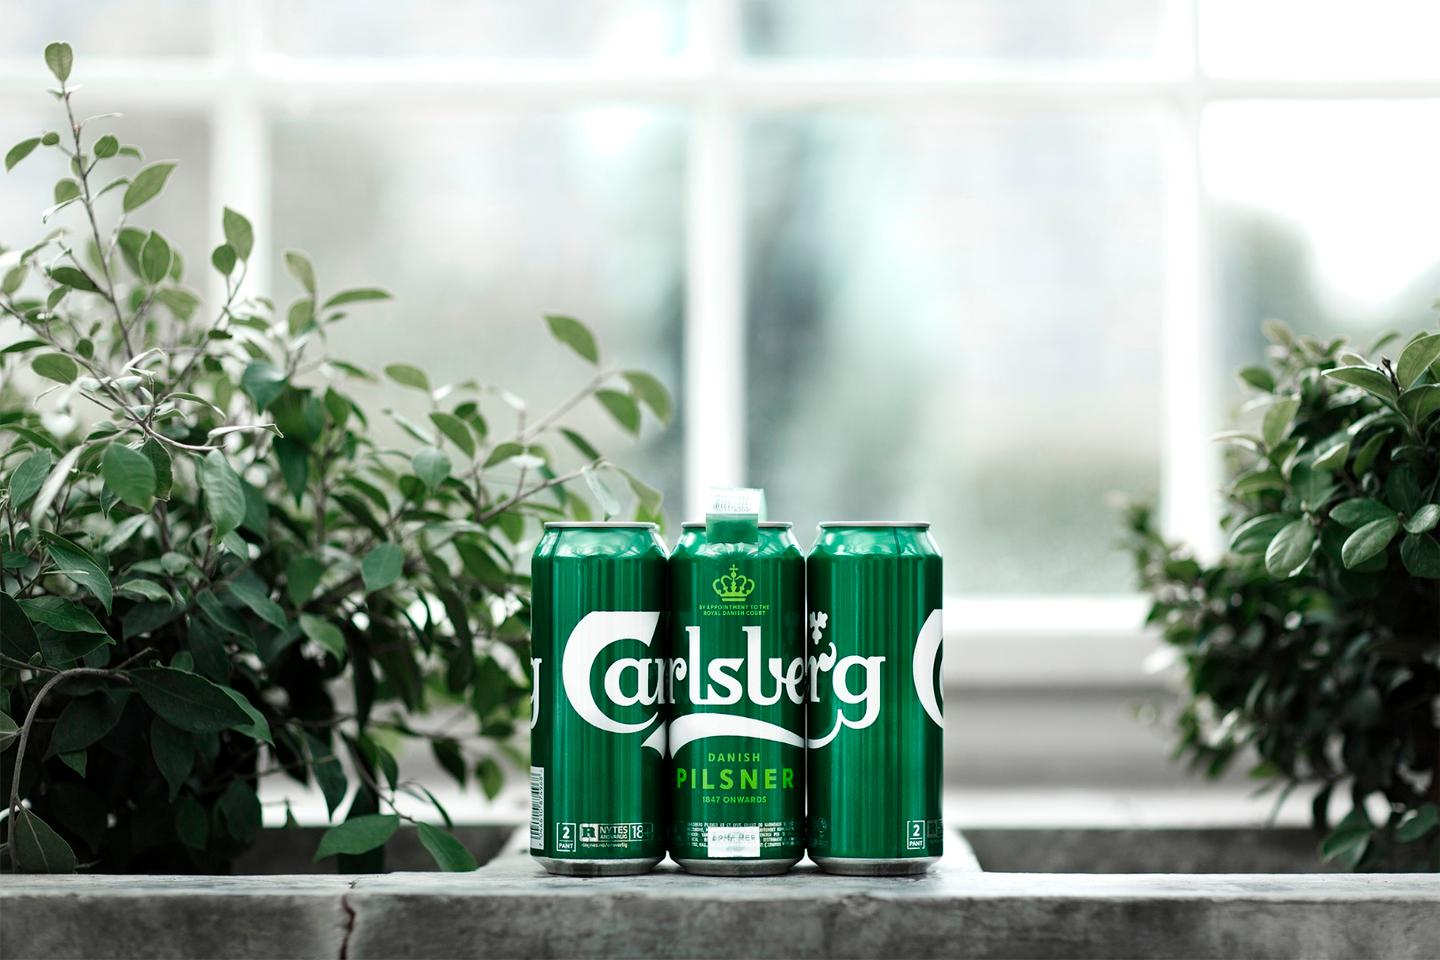 Along with the Snap Pack, Carlsberg is introducing new label inks, glass bottle coatings and caps to make its products more sustainable